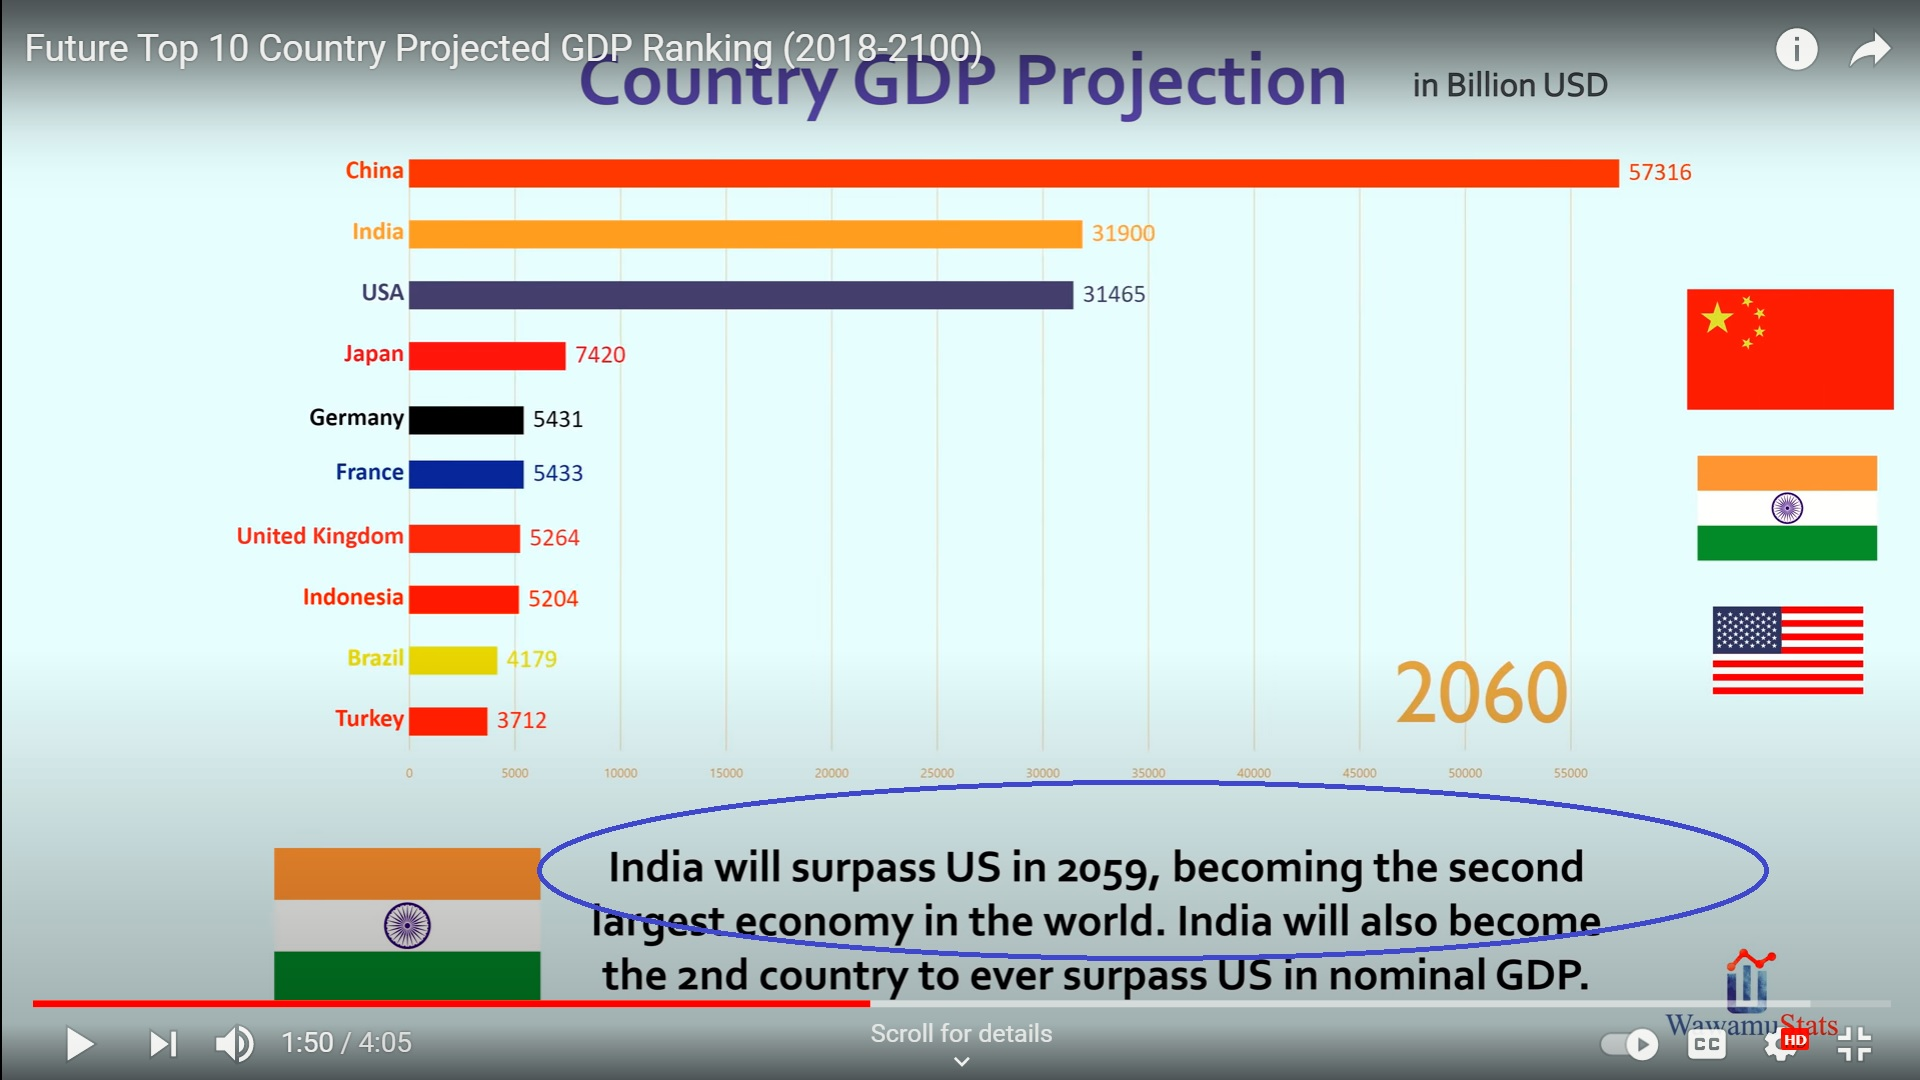 INDIA IS NUMBER 2 IN 2040 IN GDP